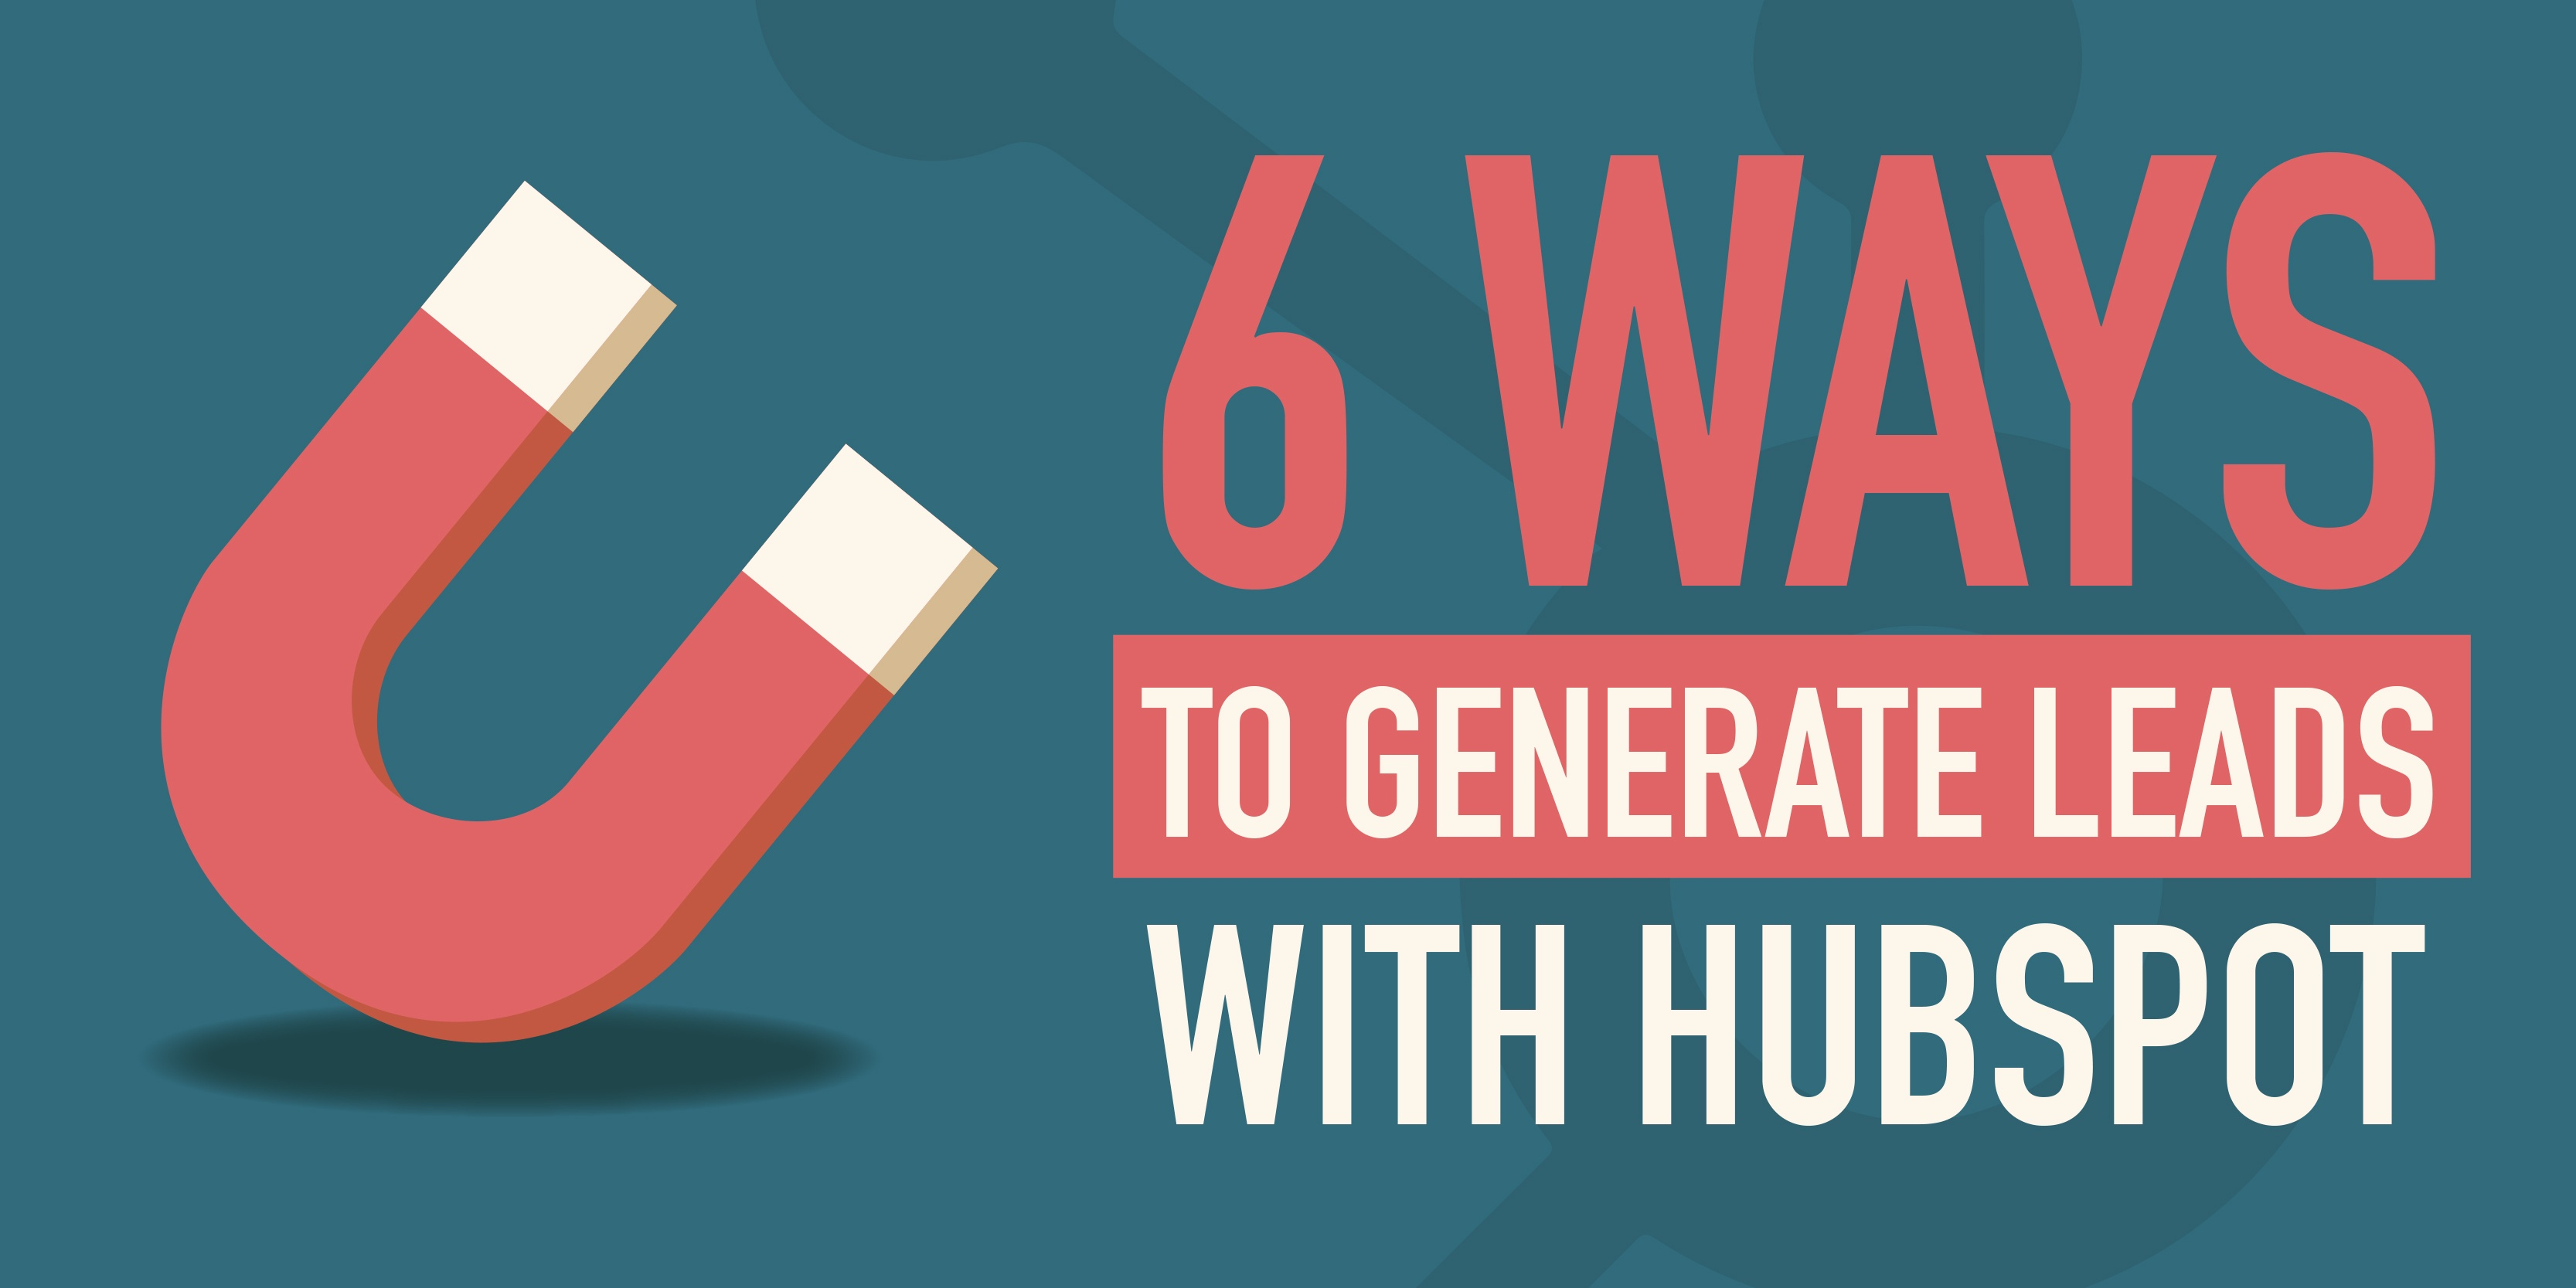 6 Ways to Generate Leads With HubSpot